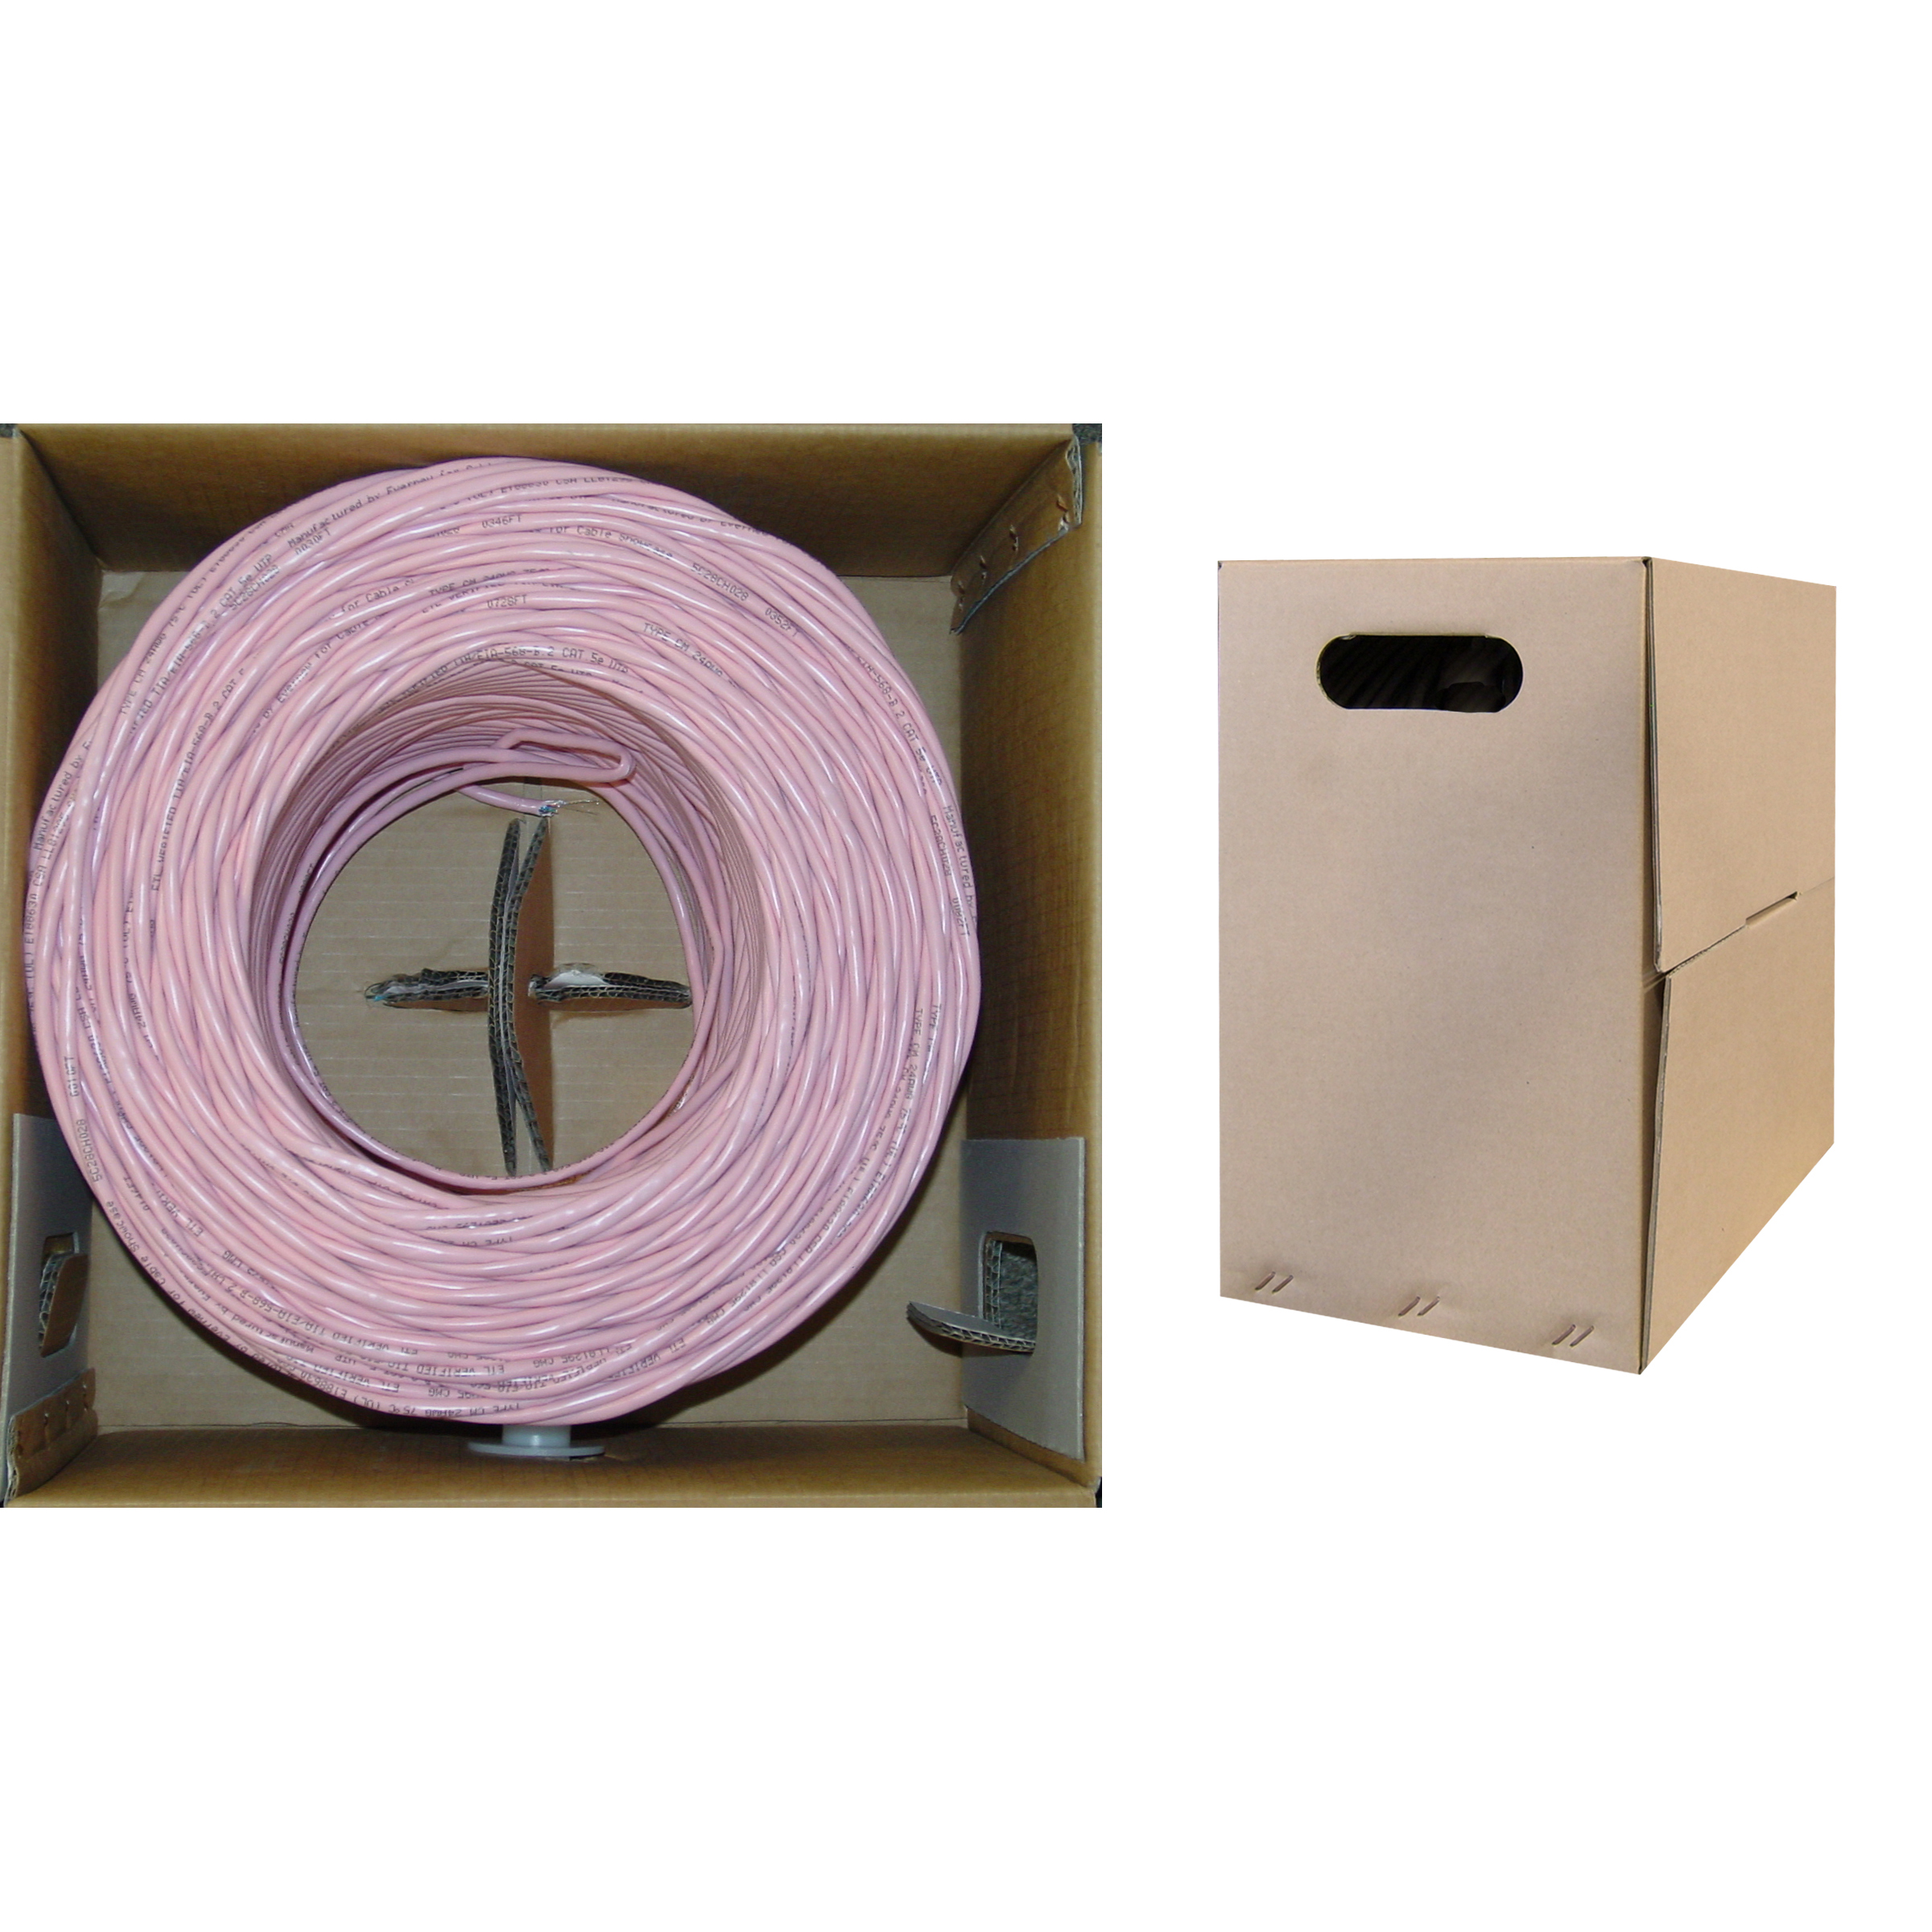 Telephone Pole Wiring Cat 6 Cable Wiring Twisted Pair Telephone Wire